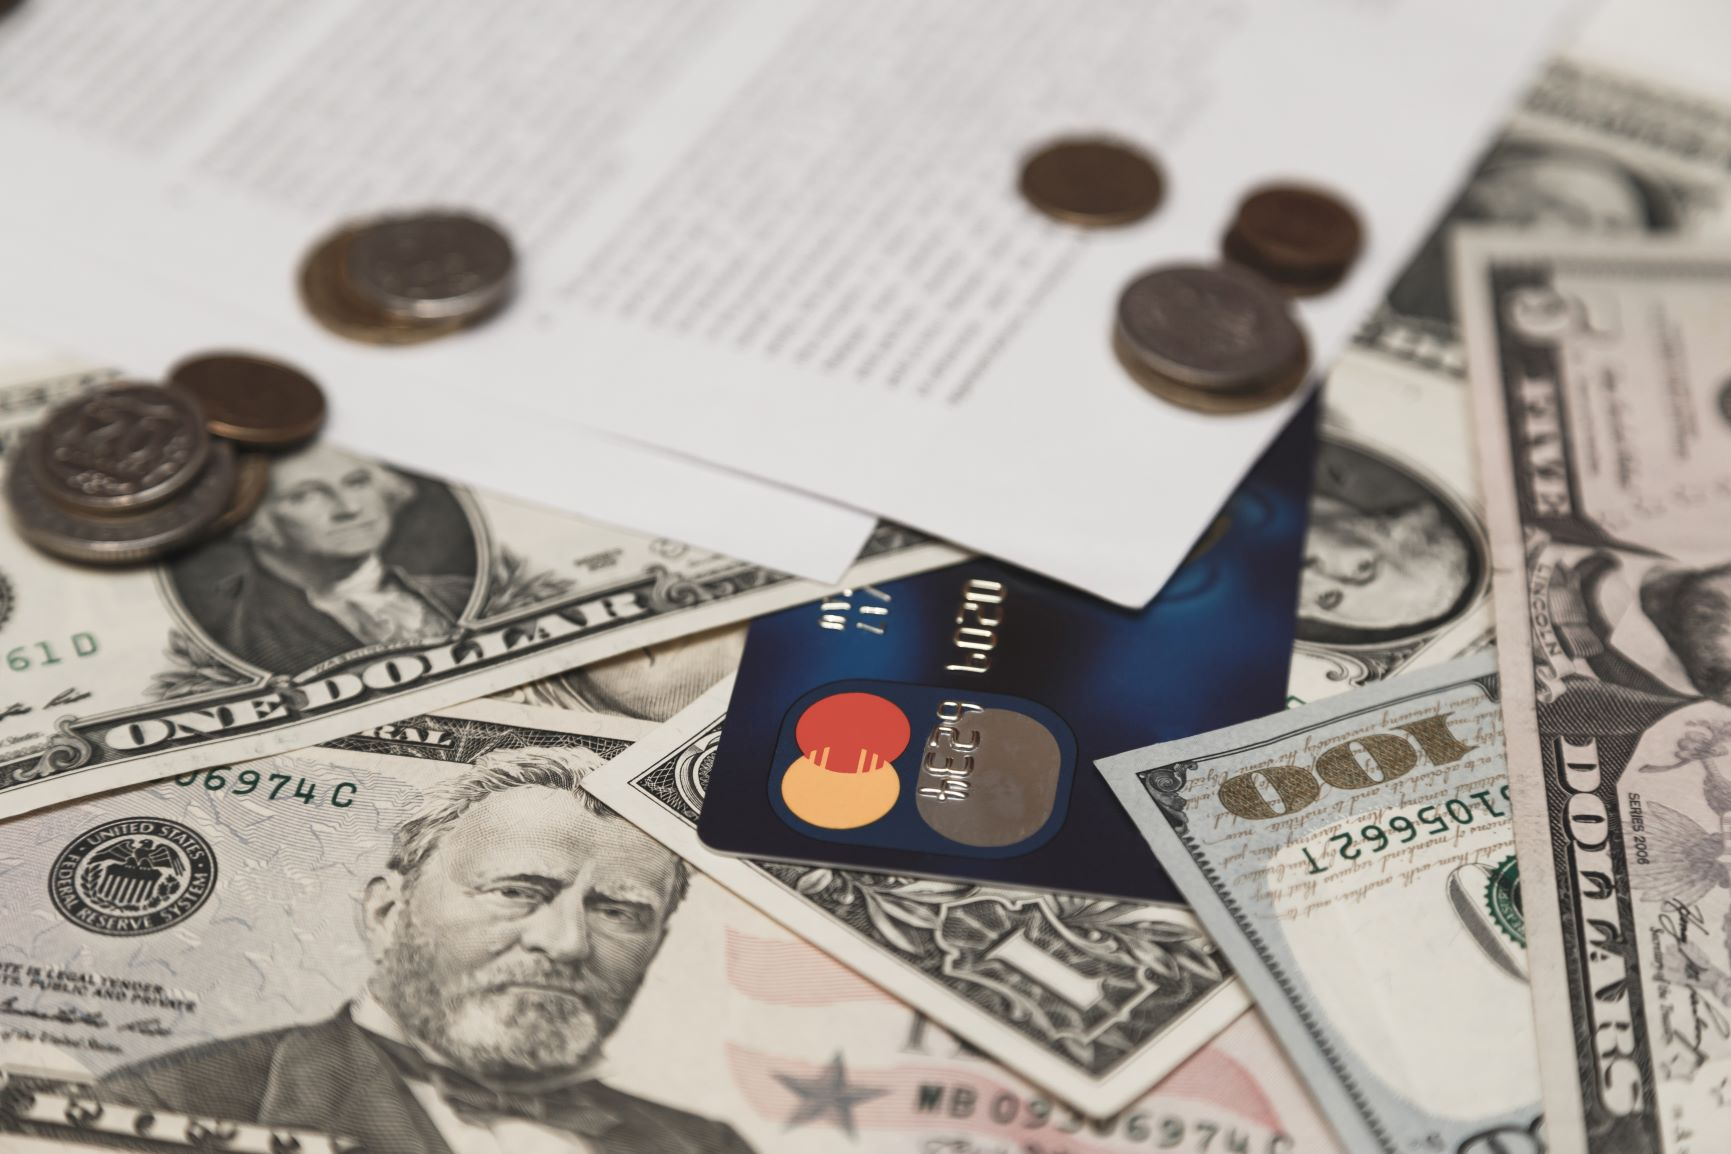 Credit card coins and cash